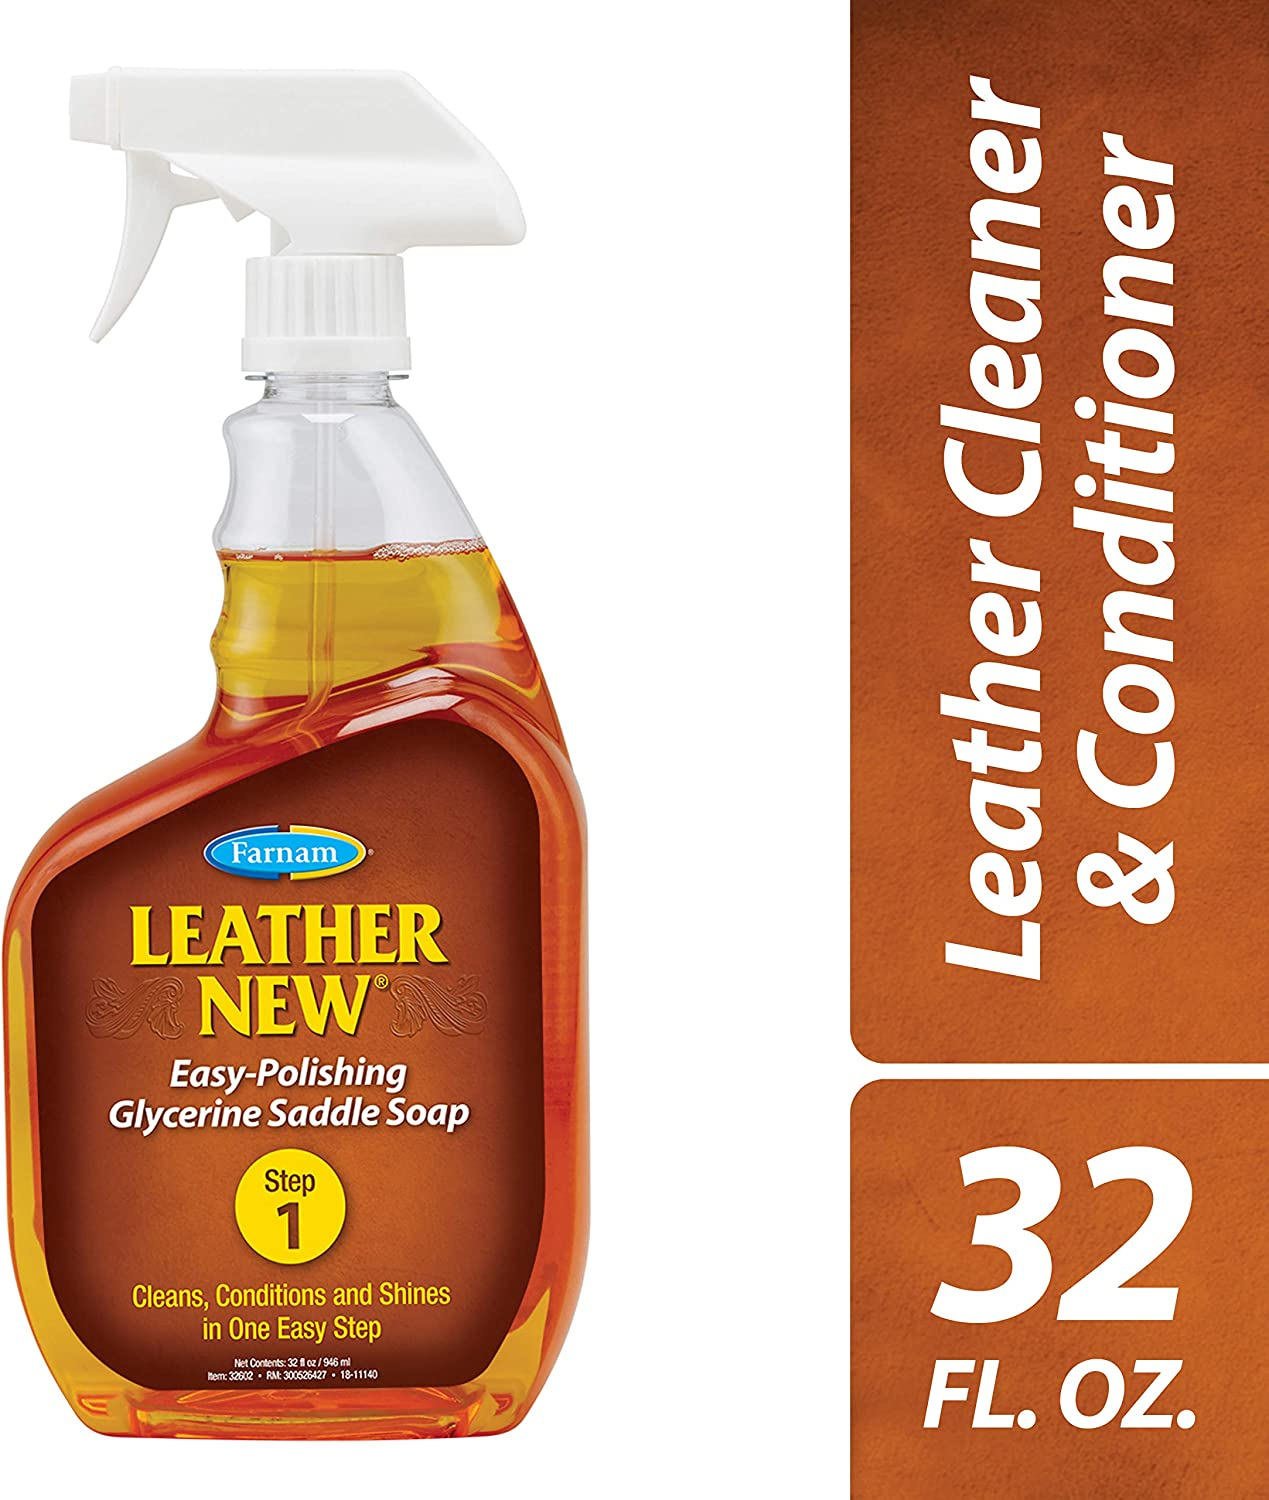 Farnam Leather New Easy-Polishing Glycerine Saddle Soap, 32 fl. oz., Model Number: 32602